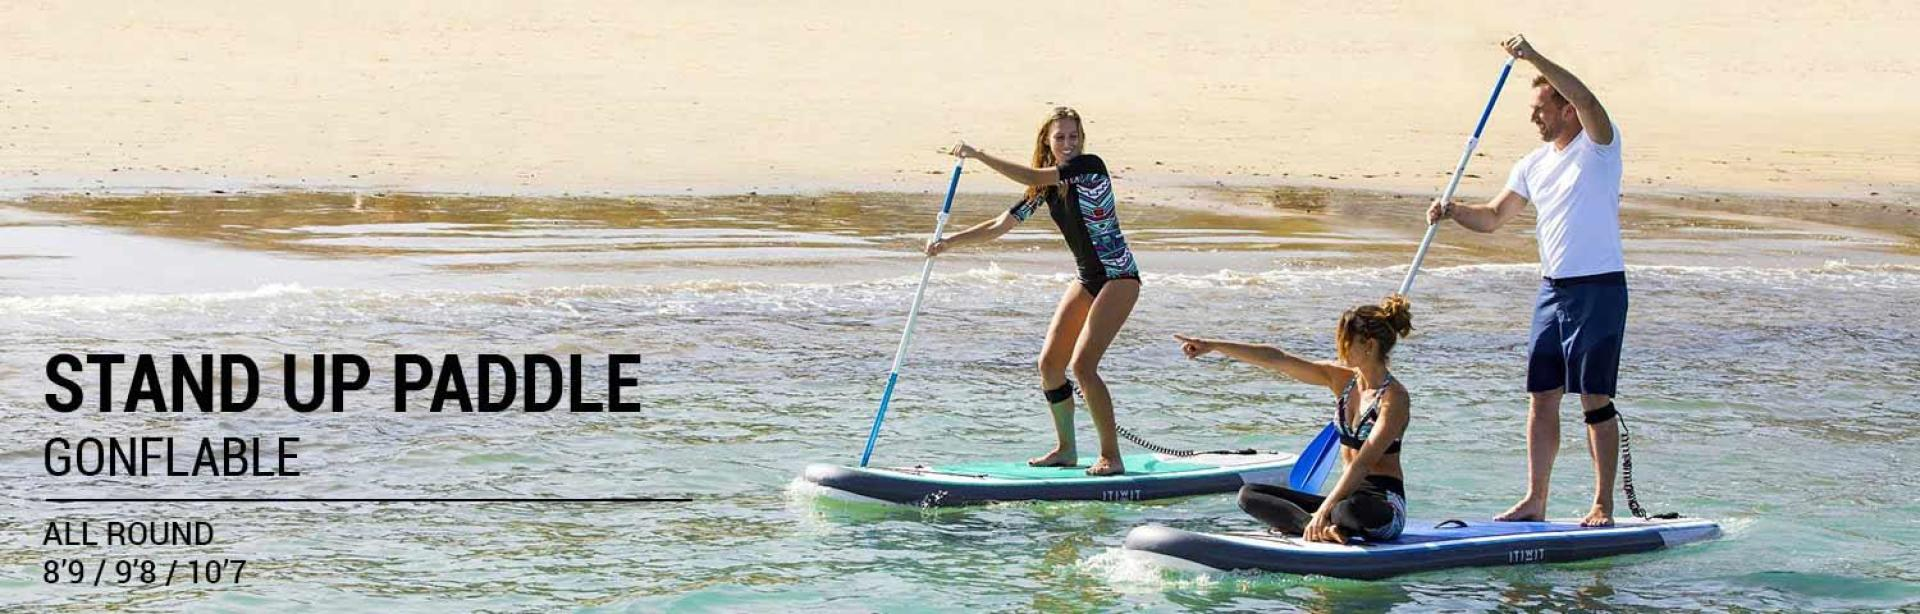 stand-up-paddle-gonflable-allround-itiwit-decathlon